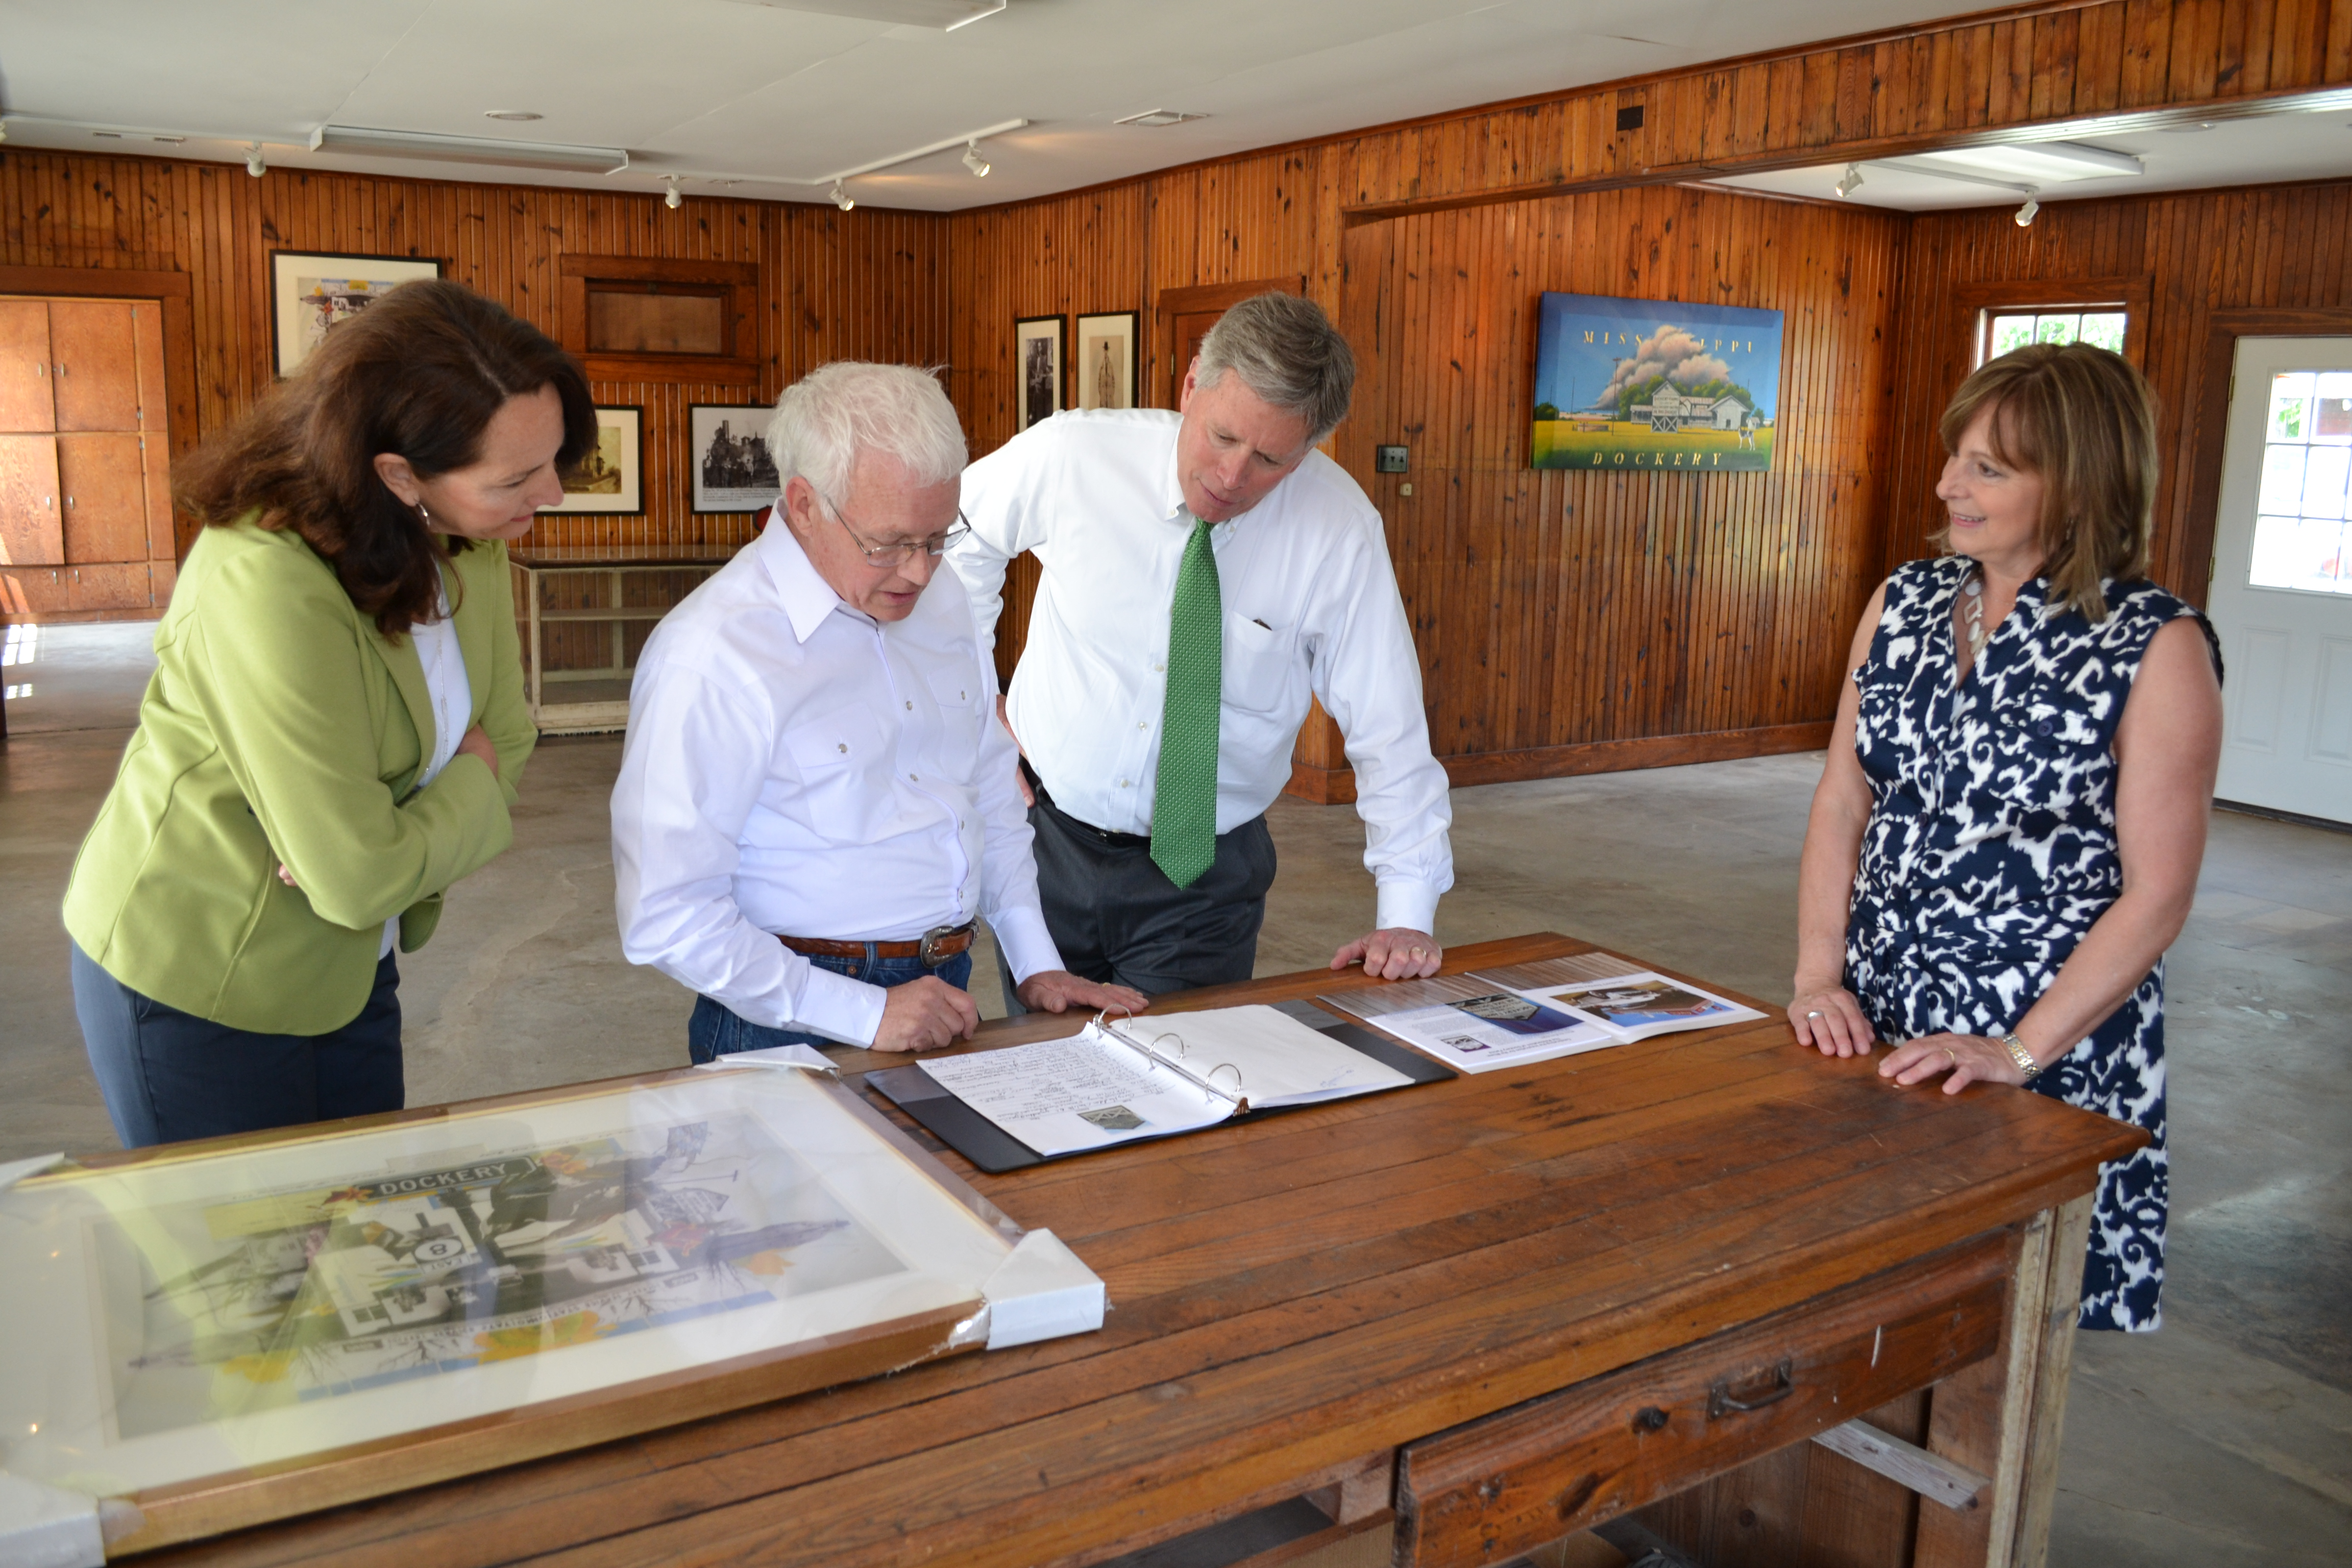 From left, First Lady Nancy LaForge, Delta State Professor Emeritus of Art and Coordinator for the Dockery Farms Foundation Bill Lester, President William N. LaForge and Tennie Lester examine the sign-in book with names of visitors from all over the world who have visited Dockery Farms.